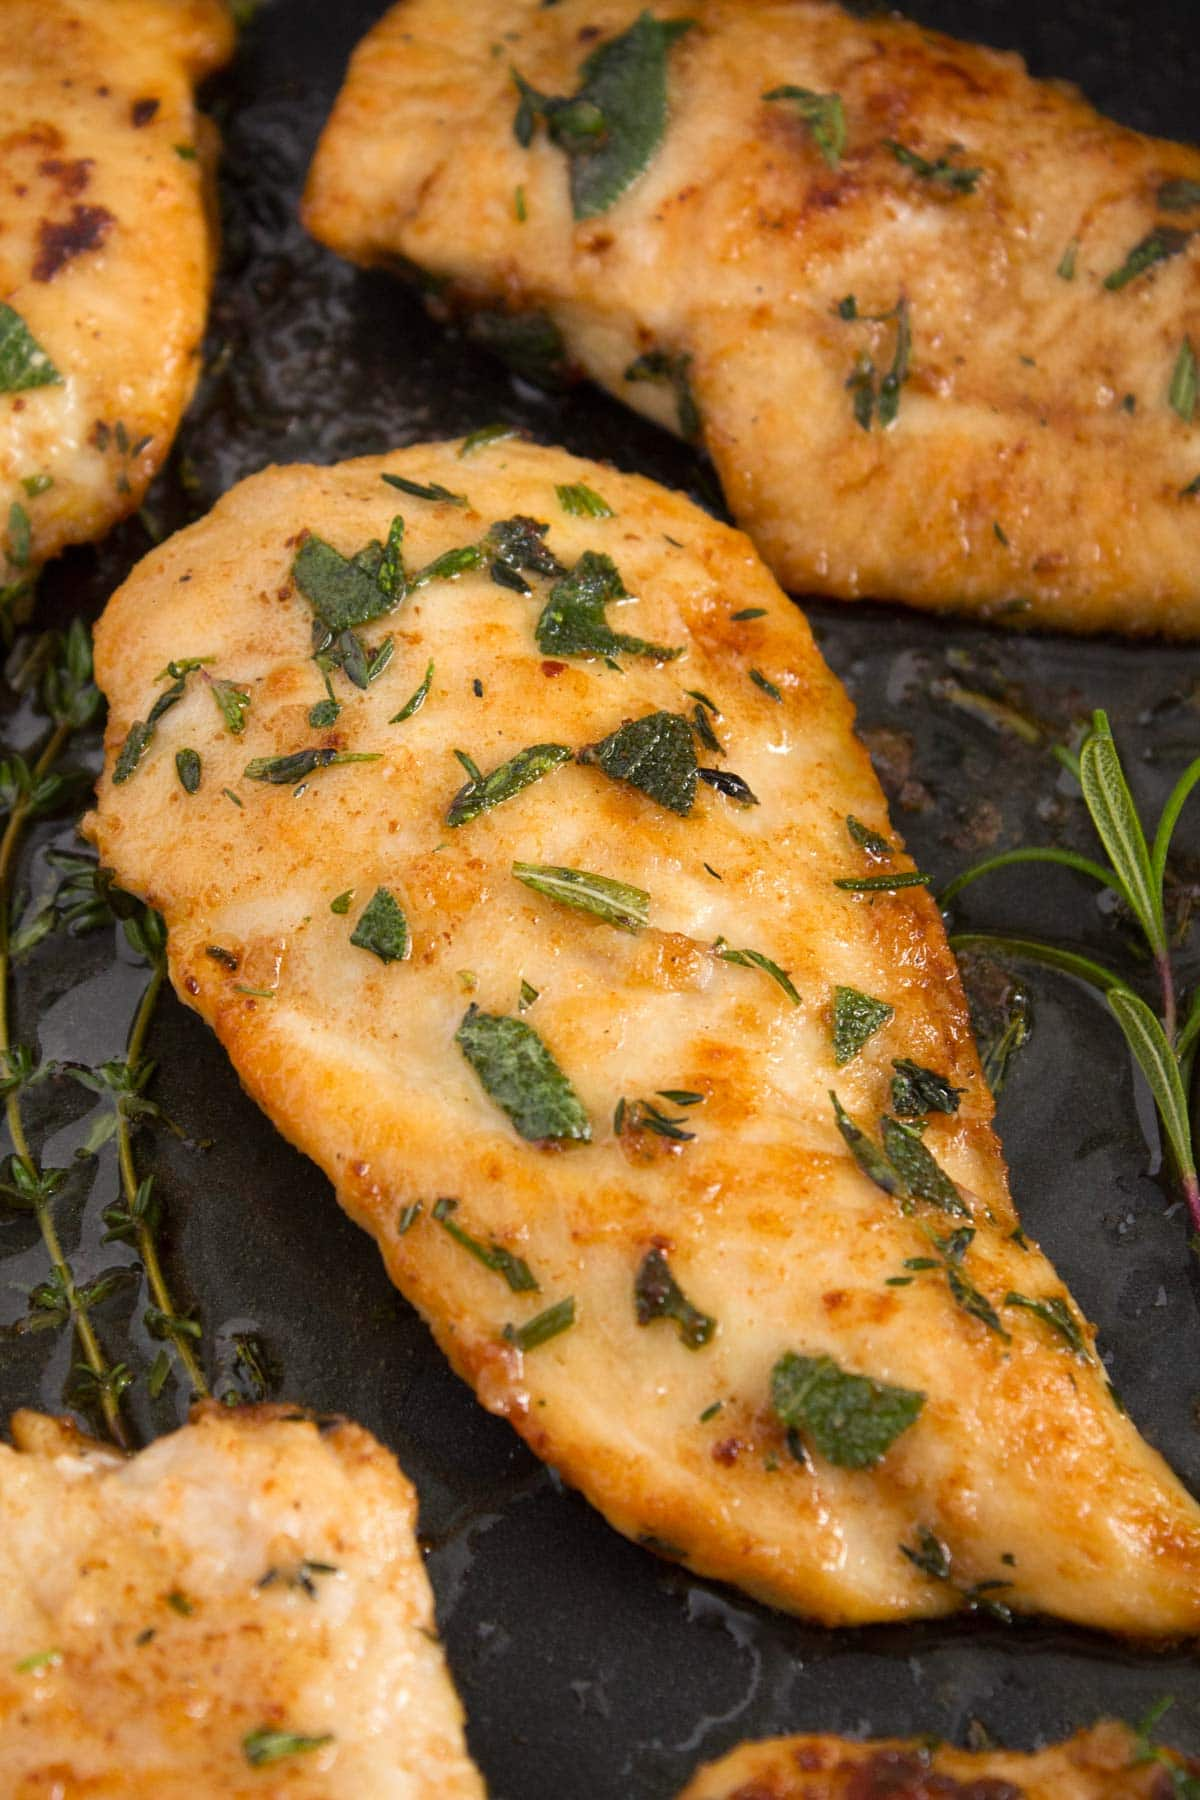 Pan seared chicken breasts in an elcetric skillet with a brown butter herb sauce.